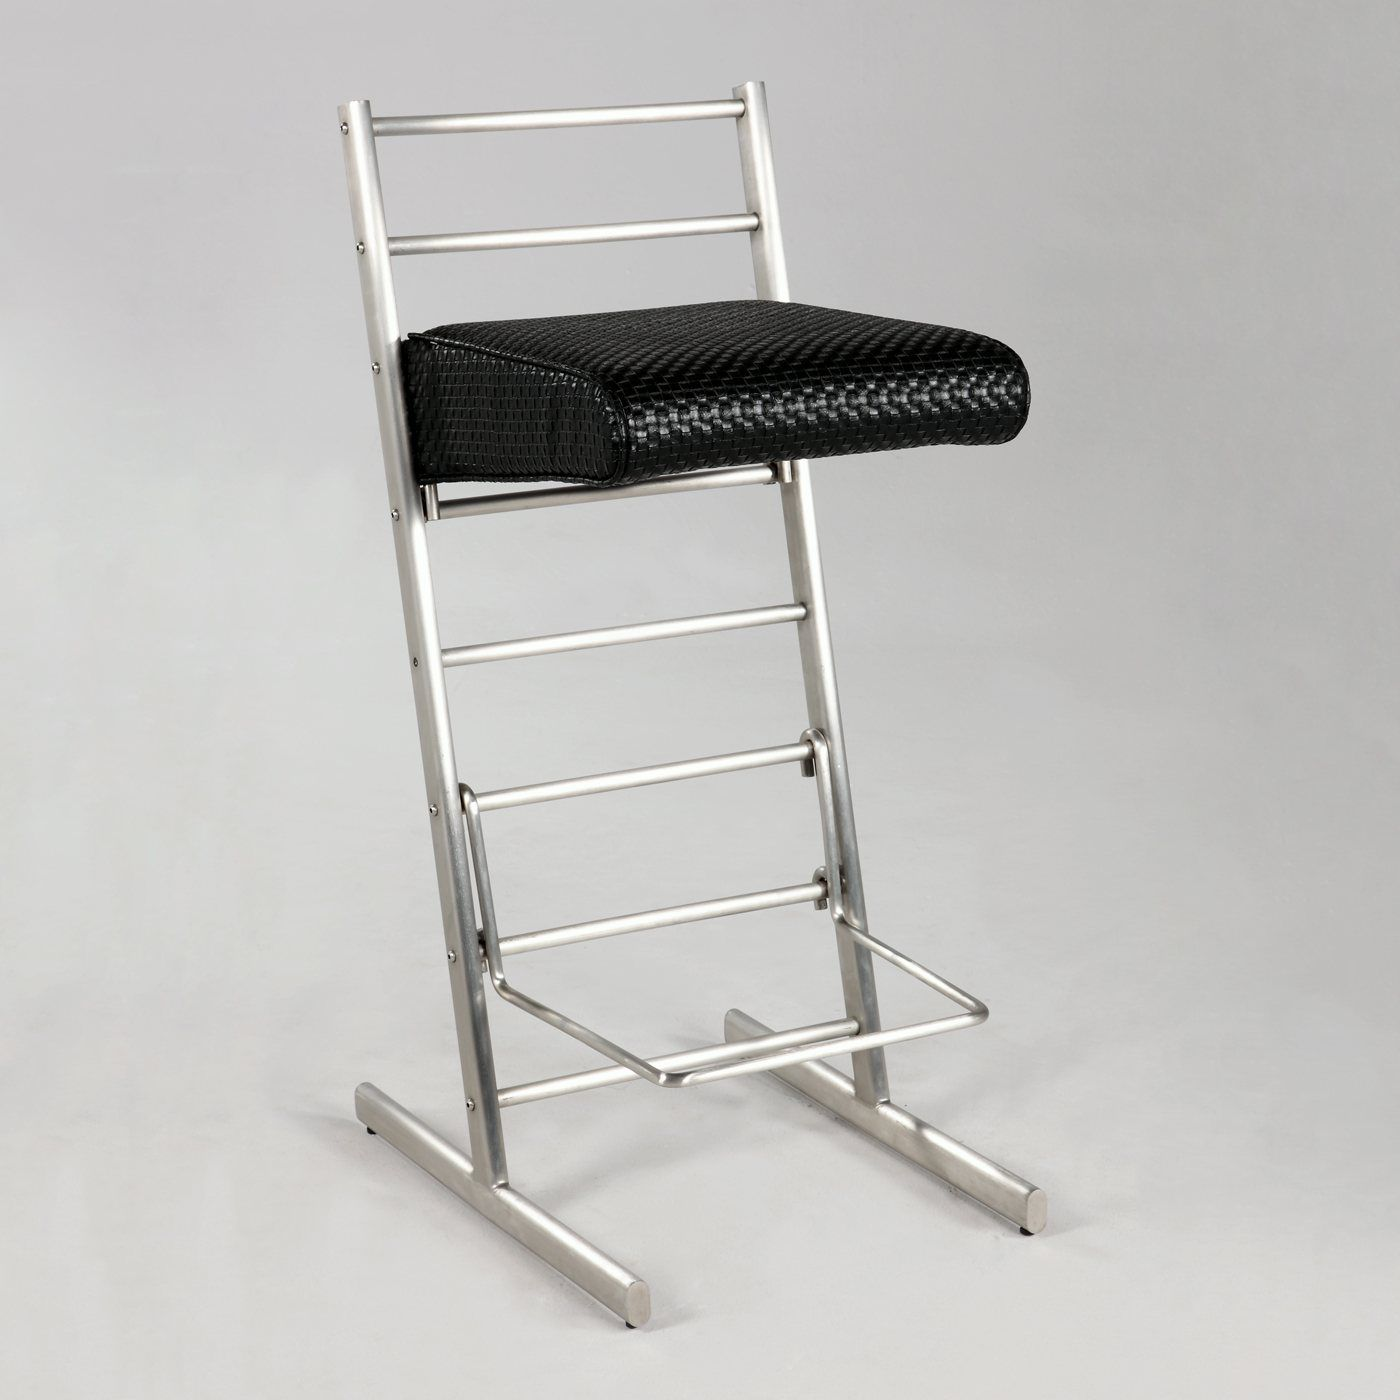 Chintaly Imports 0558-AS Multi Level Adjustable Bar Stool - Home Furniture Showroom